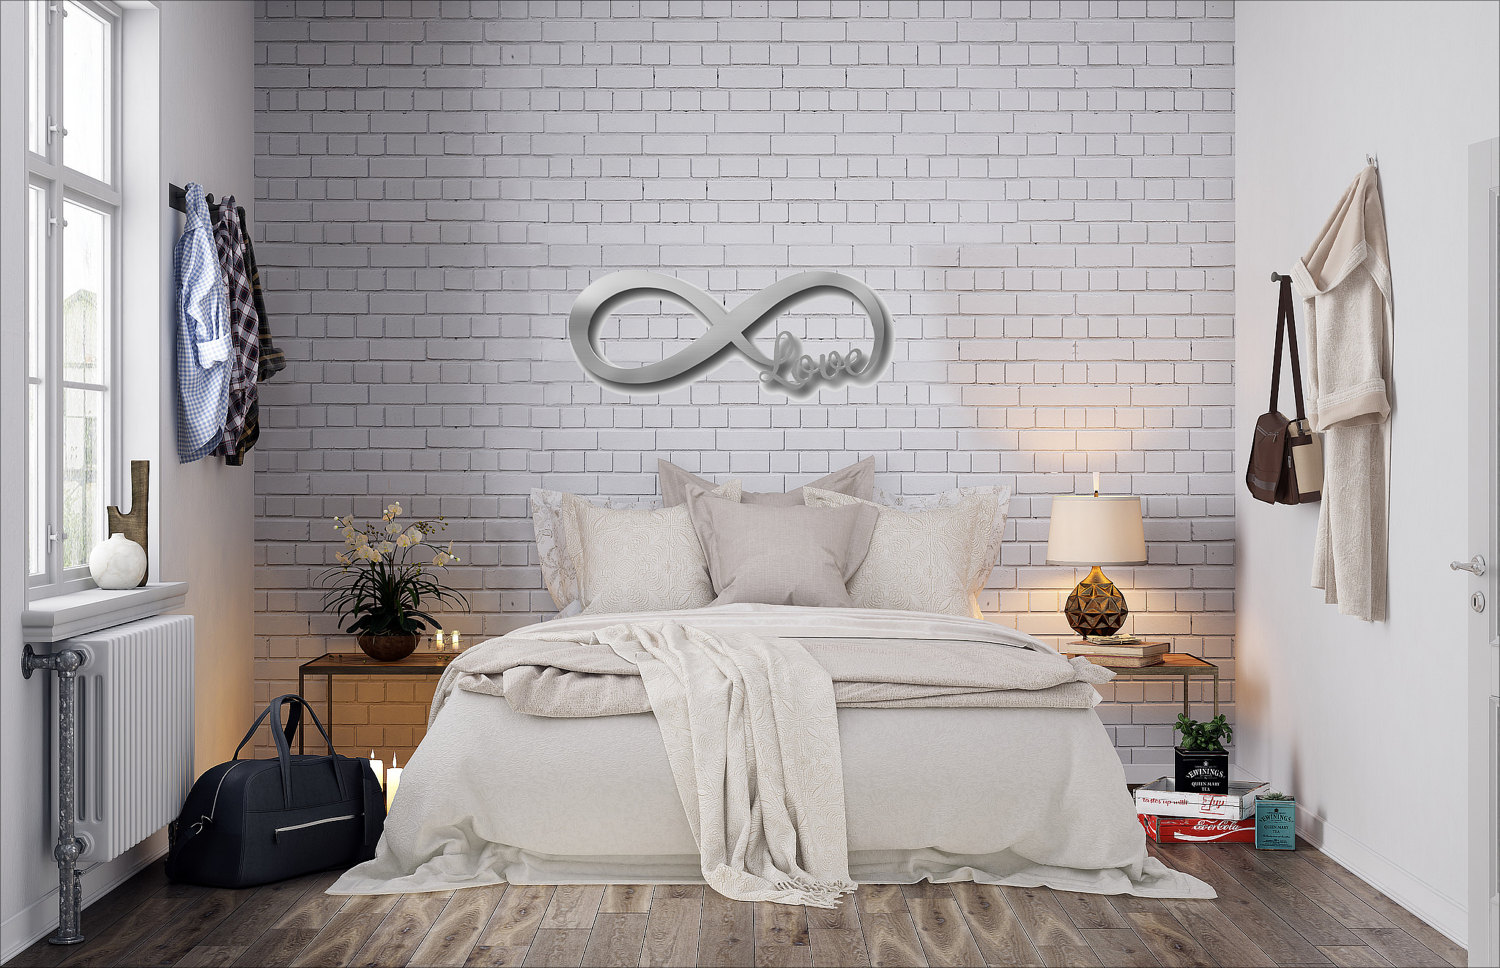 Easy Large Metal Letters For Wall Decor